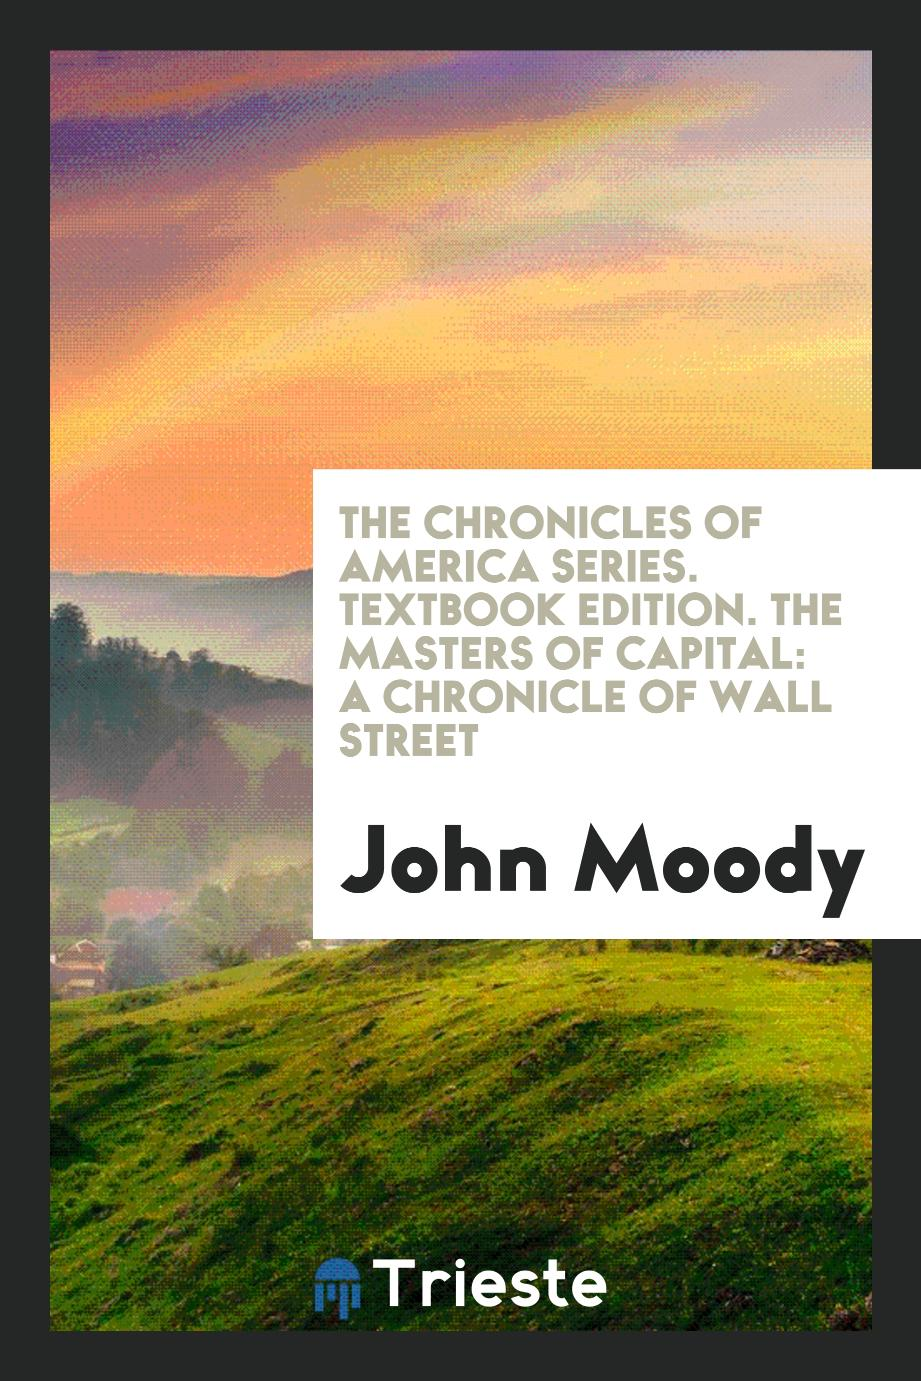 The Chronicles of America Series. Textbook Edition. The Masters of Capital: A Chronicle of Wall Street